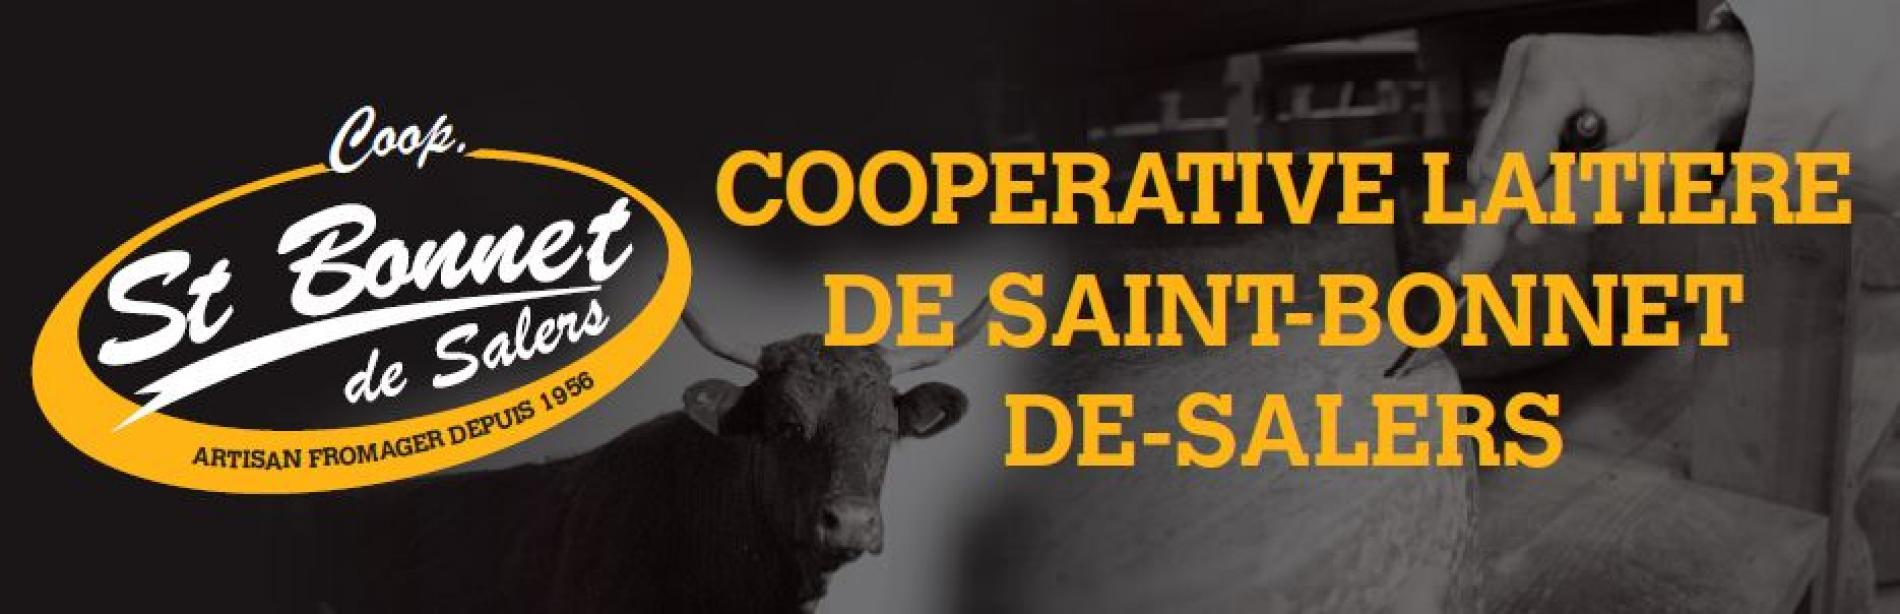 Coopérative de Saint Bonnet de Salers